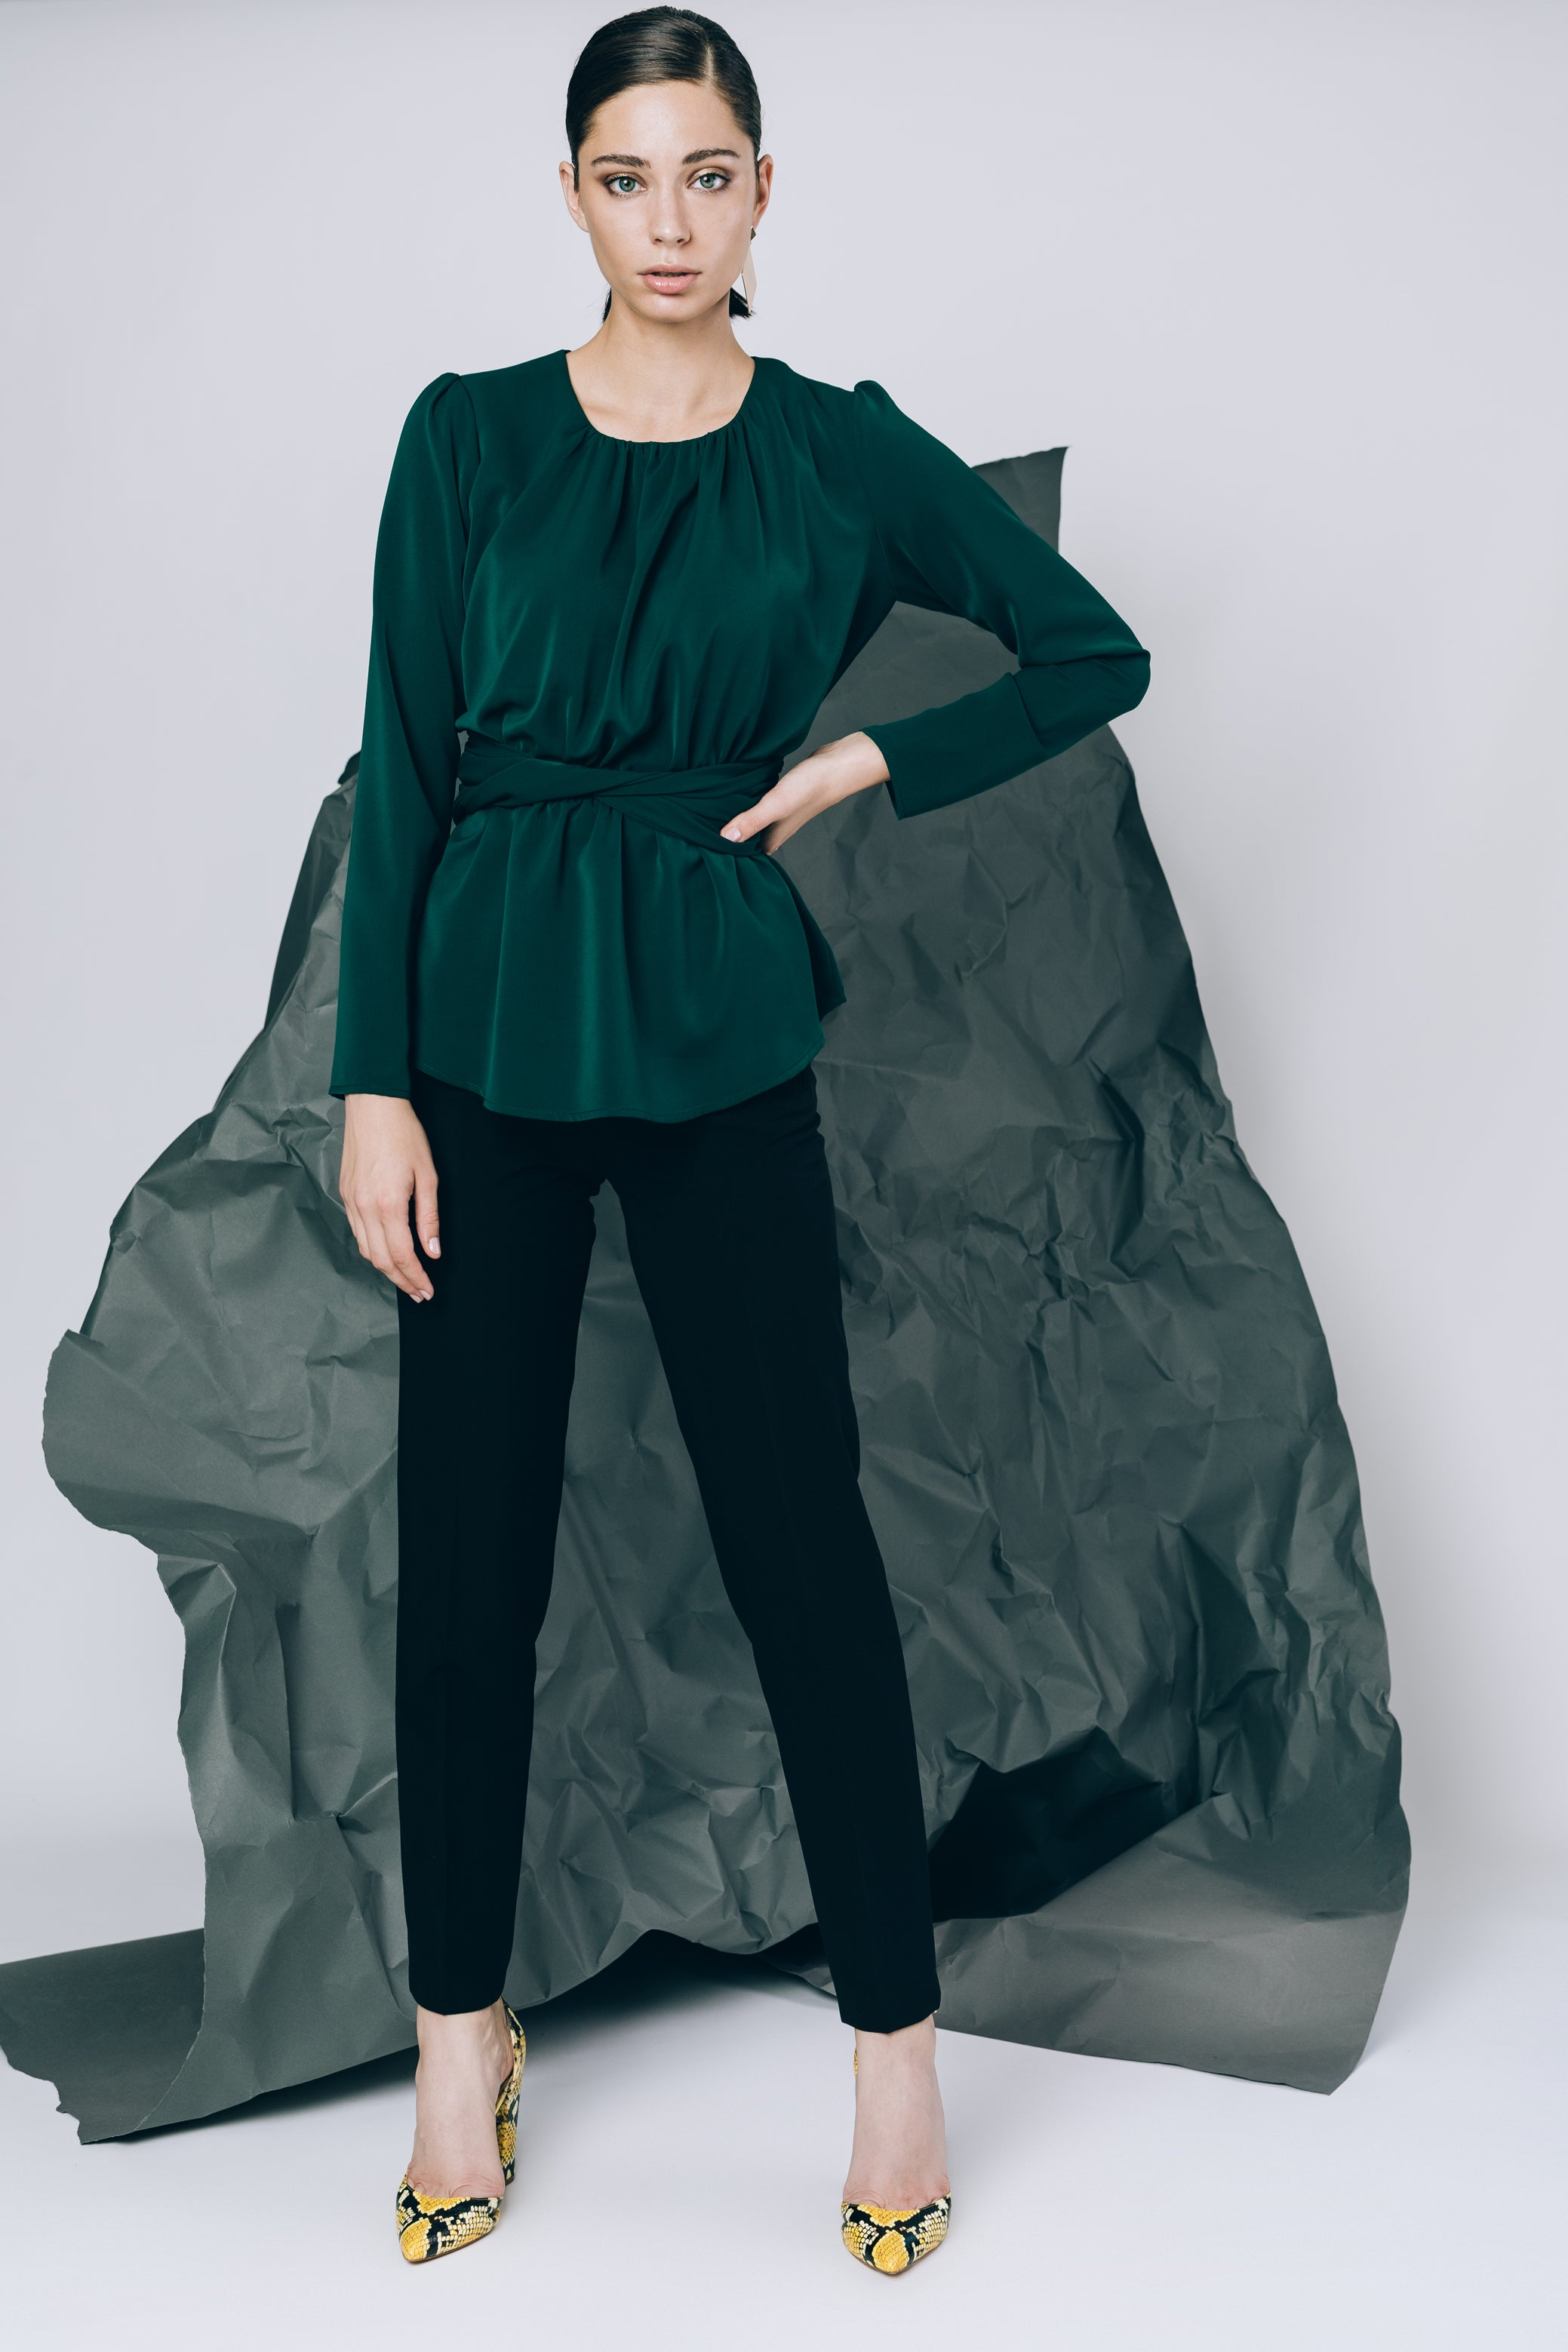 Emerald green blouse with twisted belt